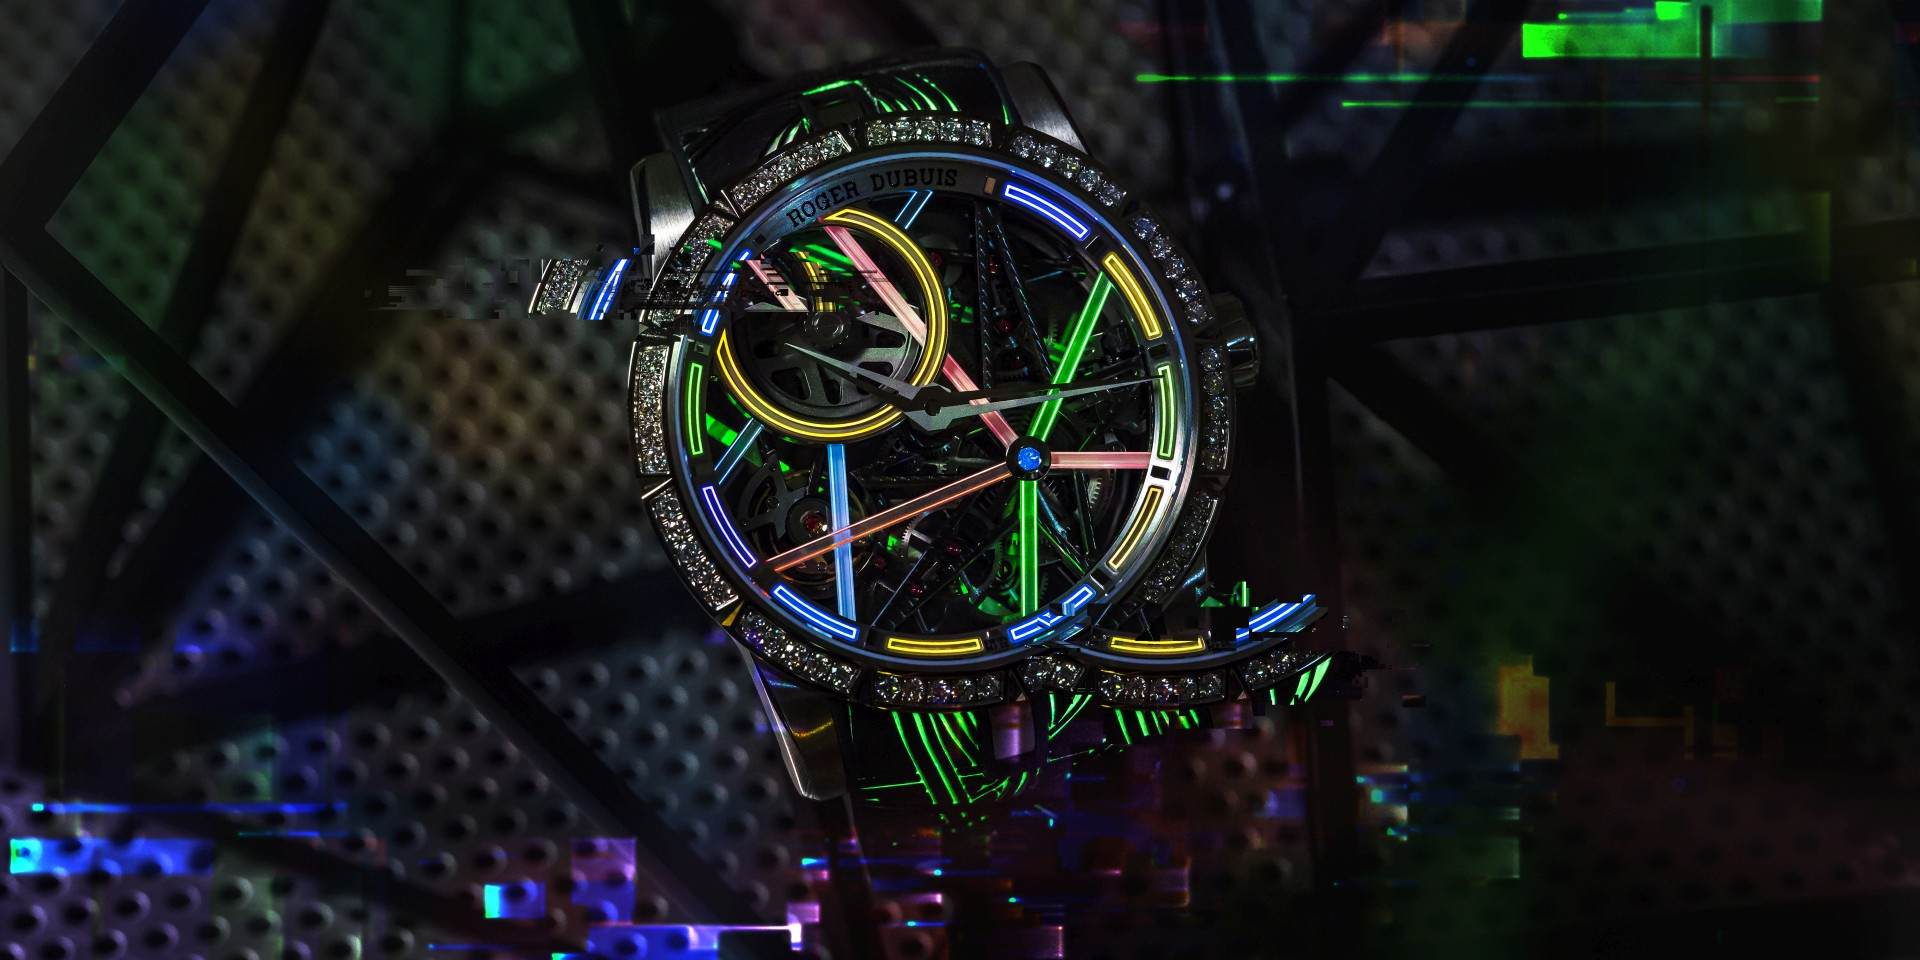 點亮霓虹都市:Roger Dubuis Excalibur Blacklight腕錶